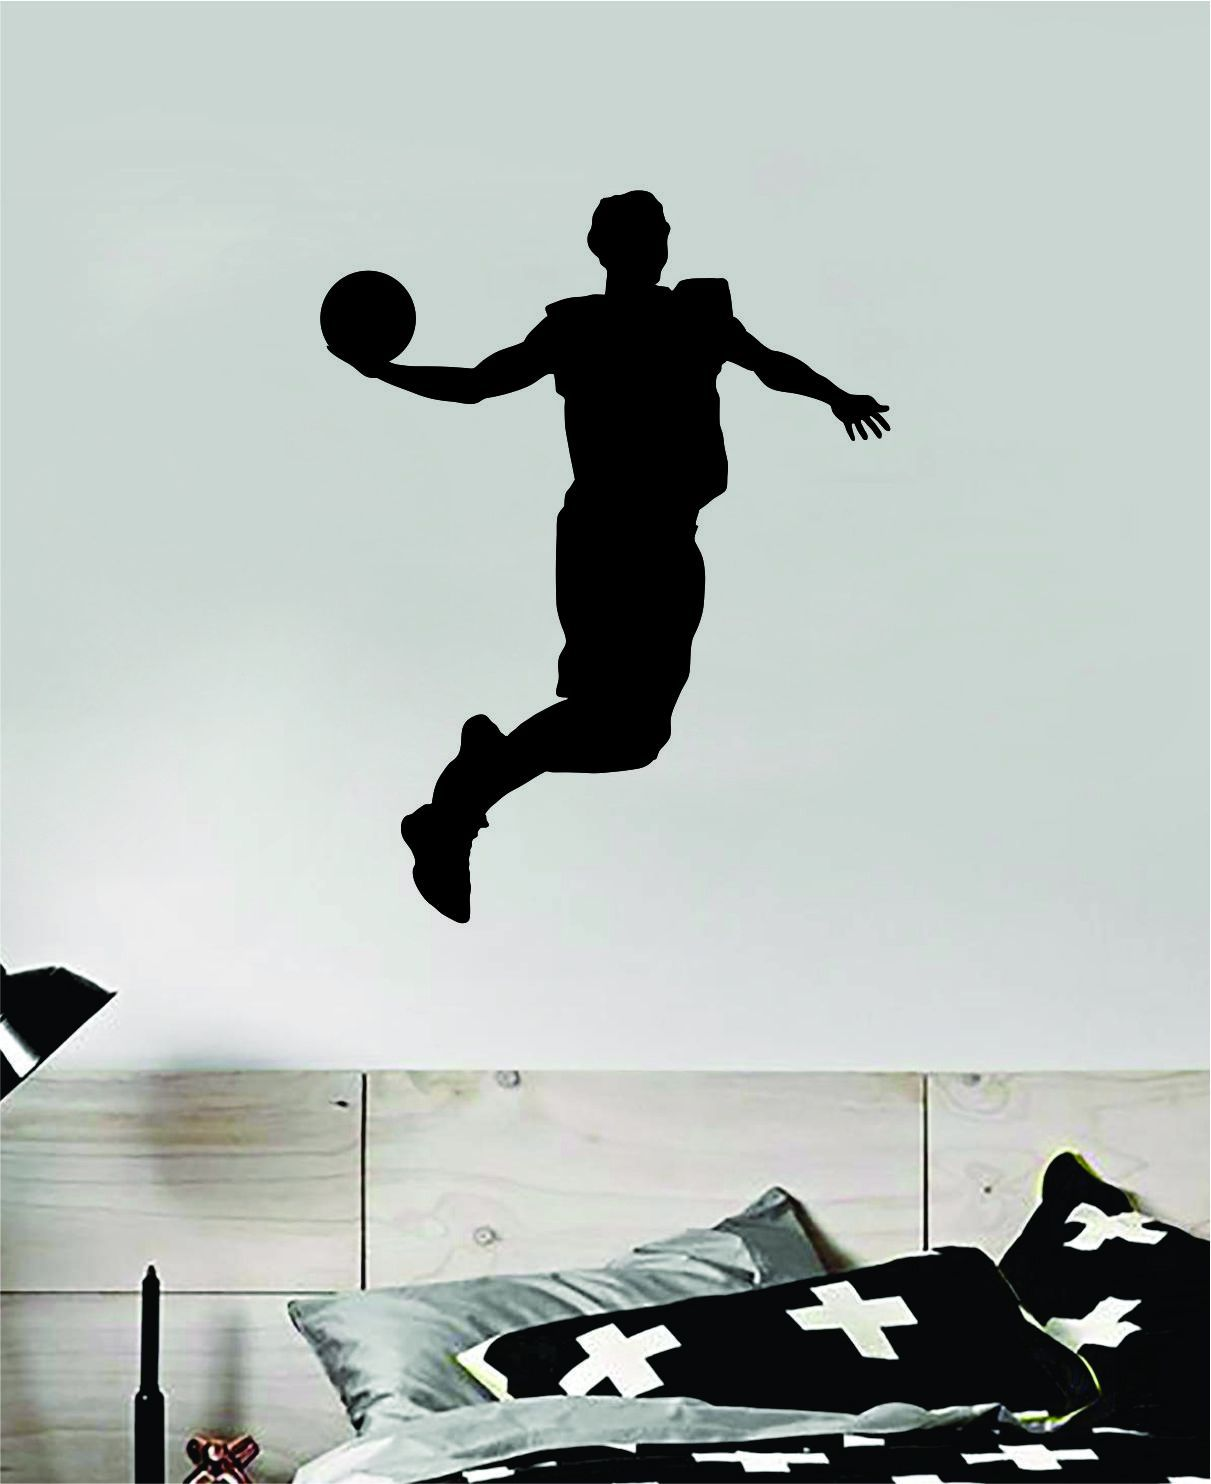 Basketball Dunk V5 Wall Decal Quote Vinyl Sticker Decor Bedroom Room Teen Kids Sports NBA Hoops - teal